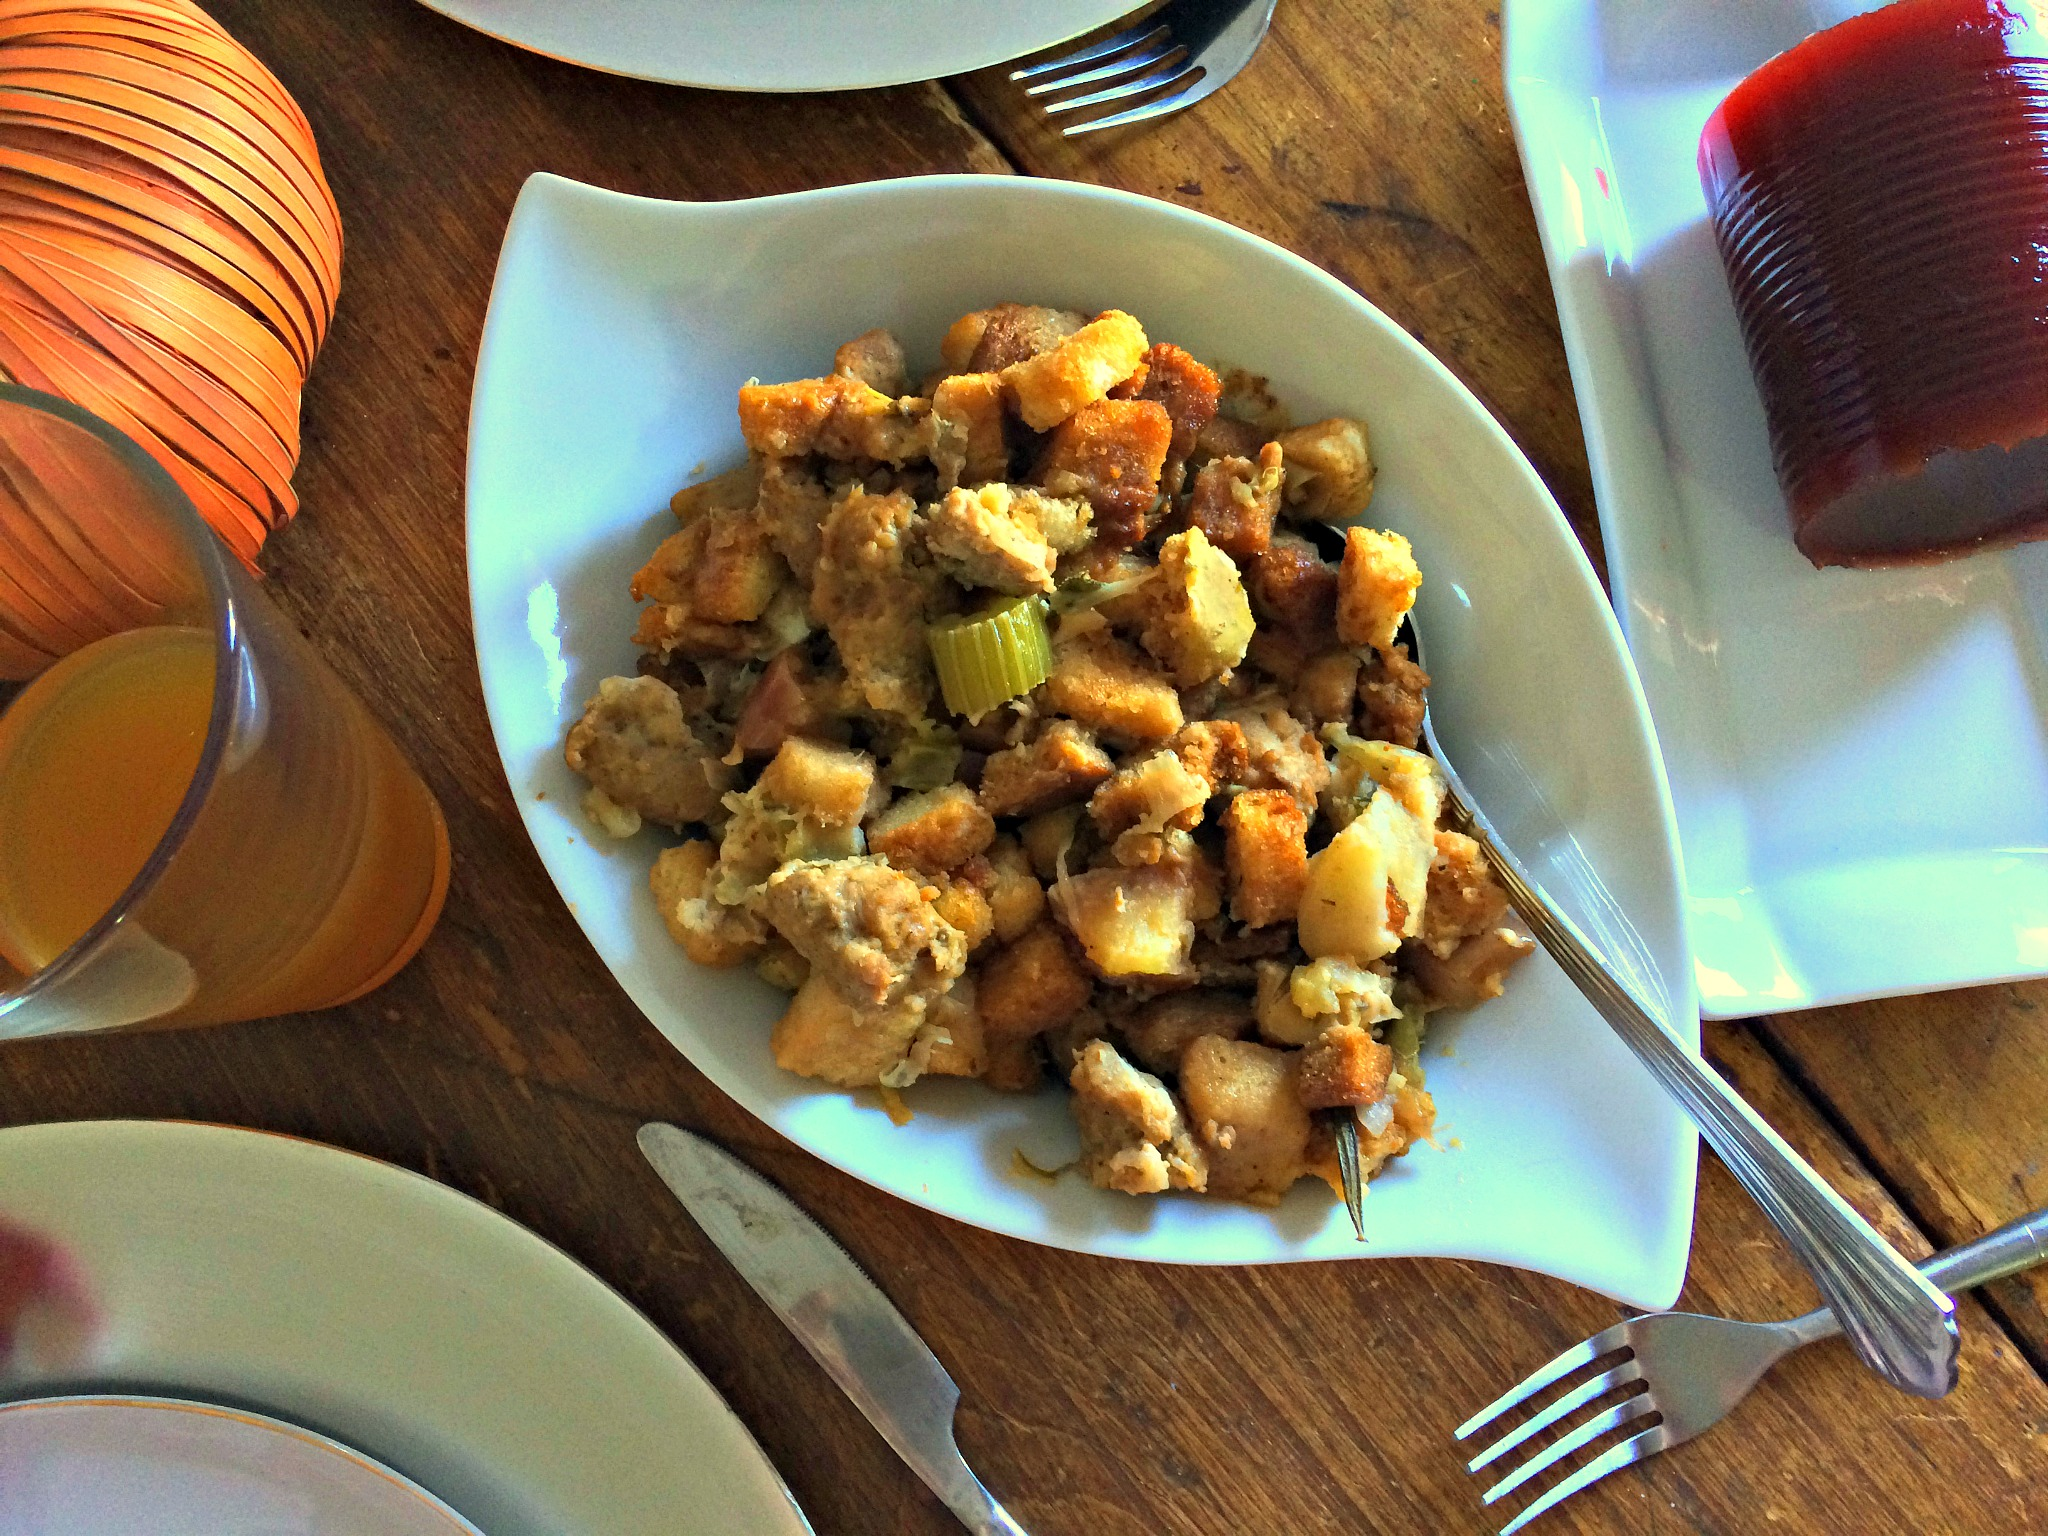 Sausage & Apple Stuffing Recipe - a moist and flavourful addition to any holiday meal AND it can be made in the slow cooker! Check it out @ GagenGirls.com